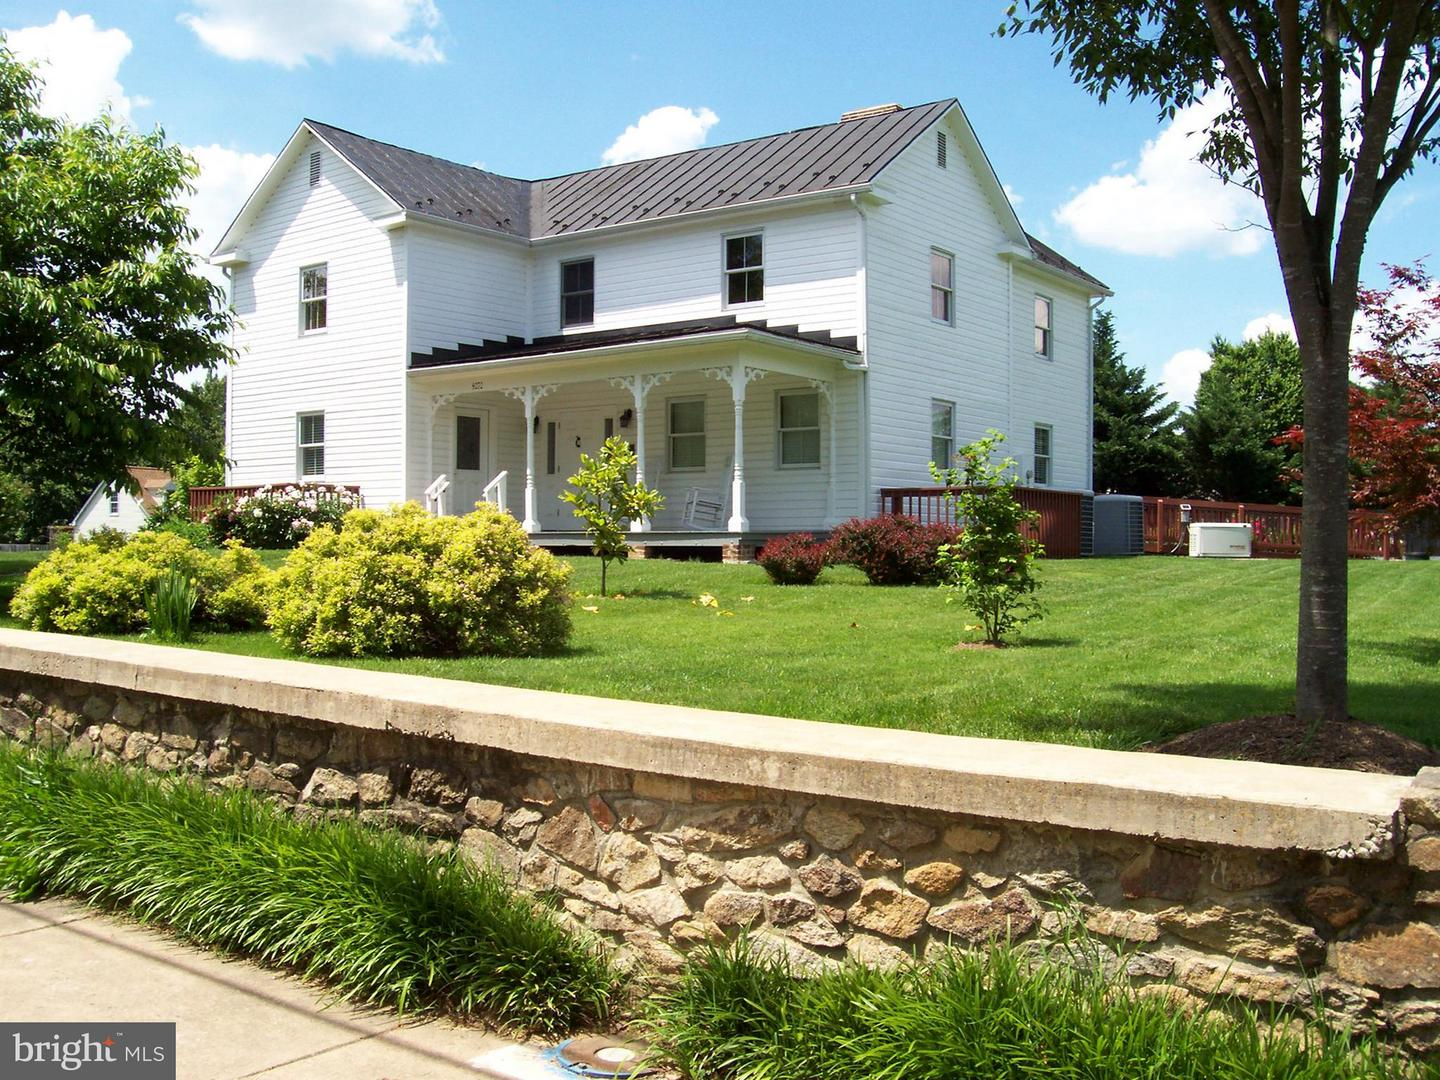 Other Residential for Rent at 8272 E. Main St E #2a Marshall, Virginia 20115 United States